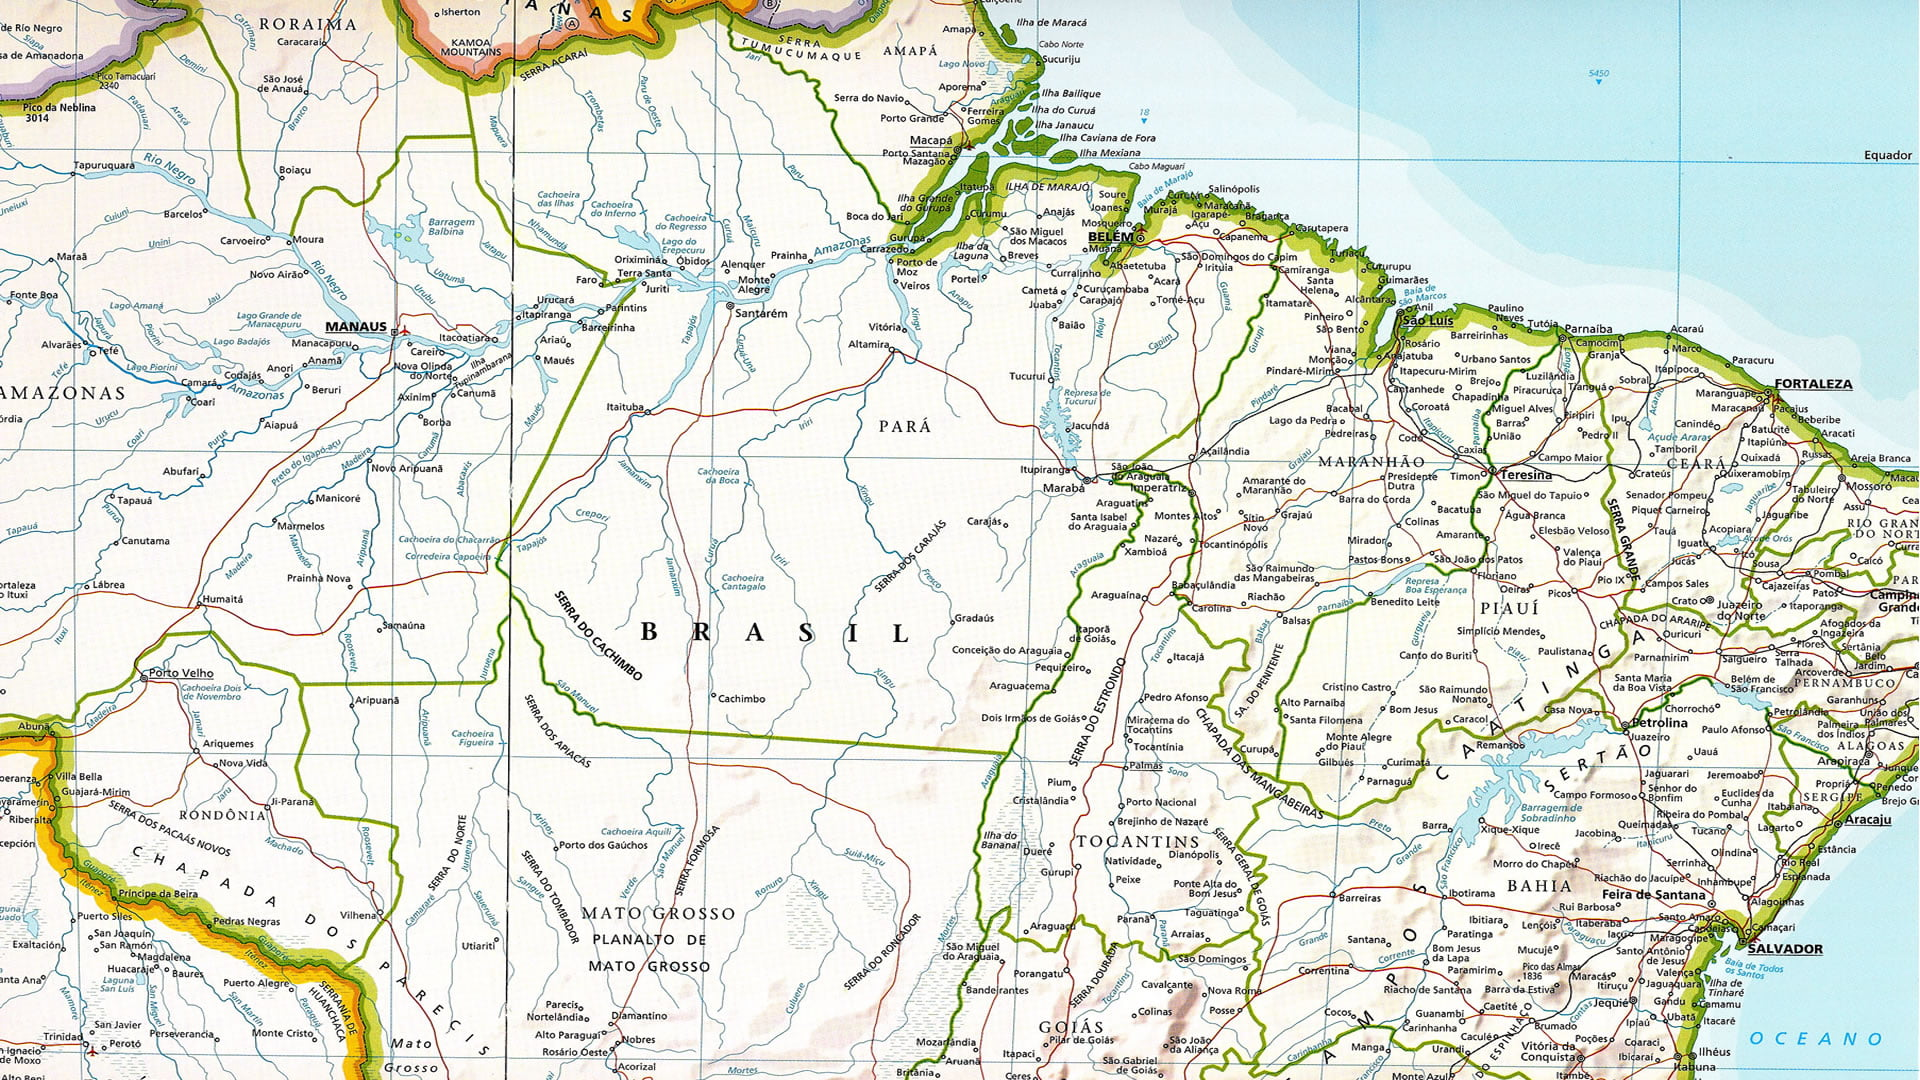 haiti maps with Mapa De Brasil on Turkey also Amerique Du Sud Carte Avec Pays moreover Philippines moreover Turquia as well Dams Drought And Disaster Along Mekong River.